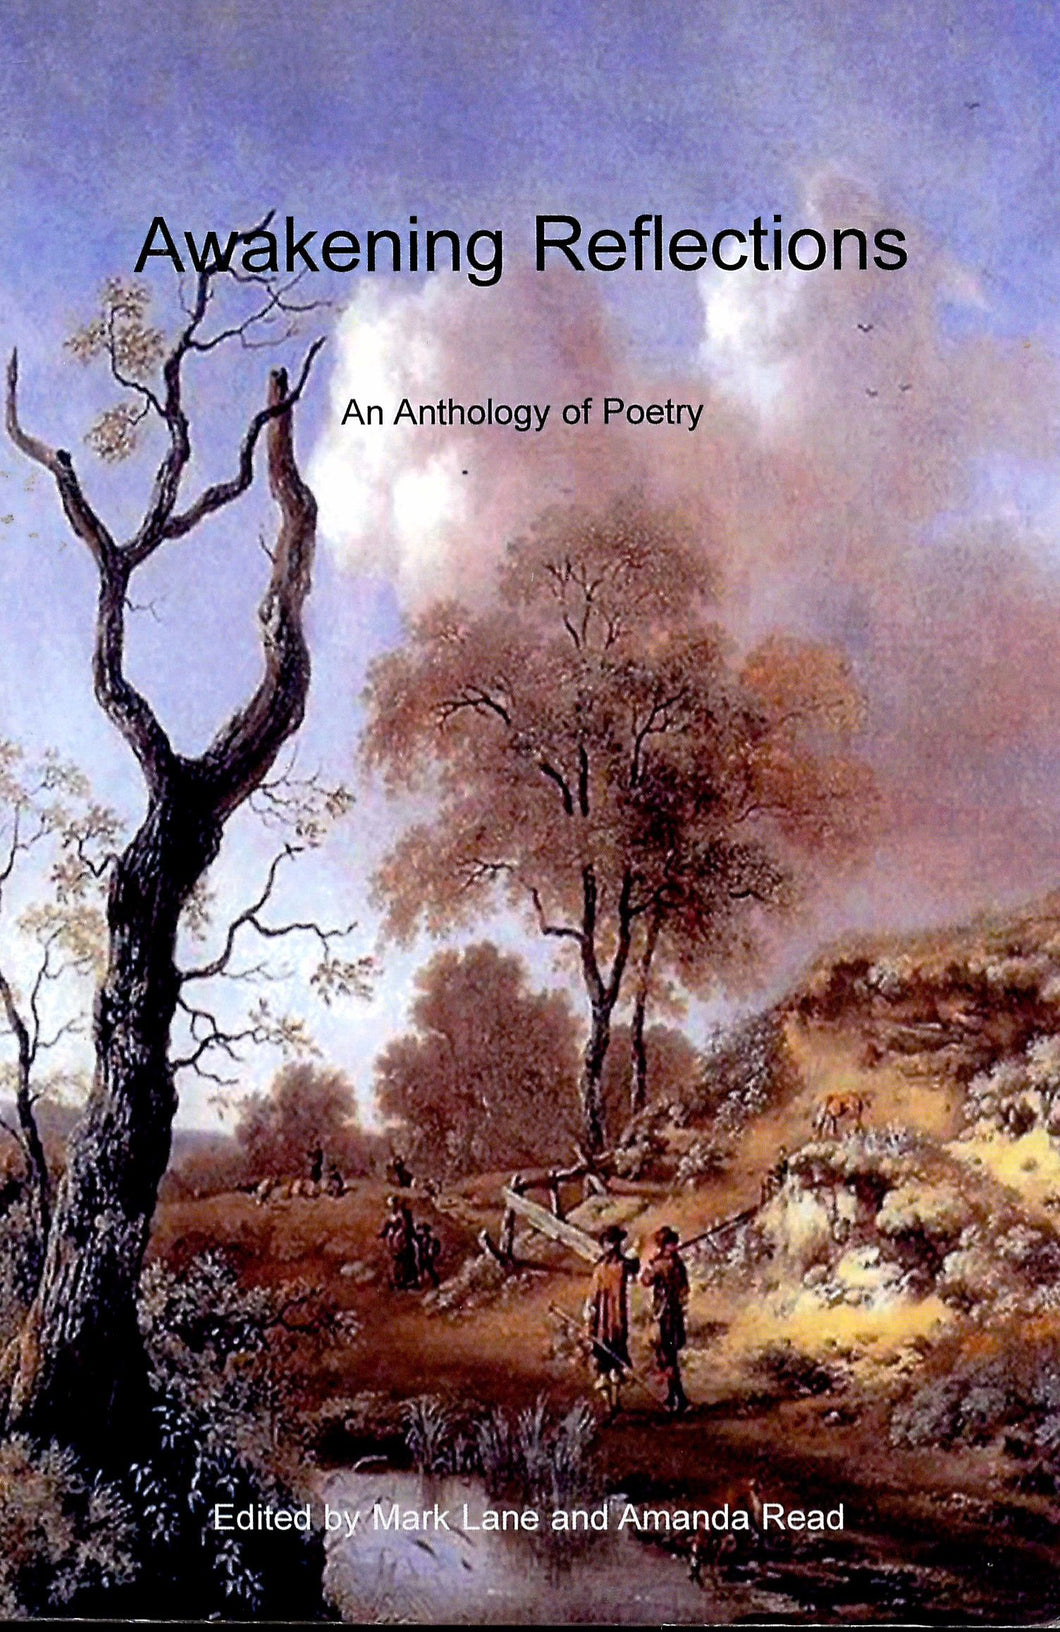 Awakening Reflections: An Anthology of Poetry